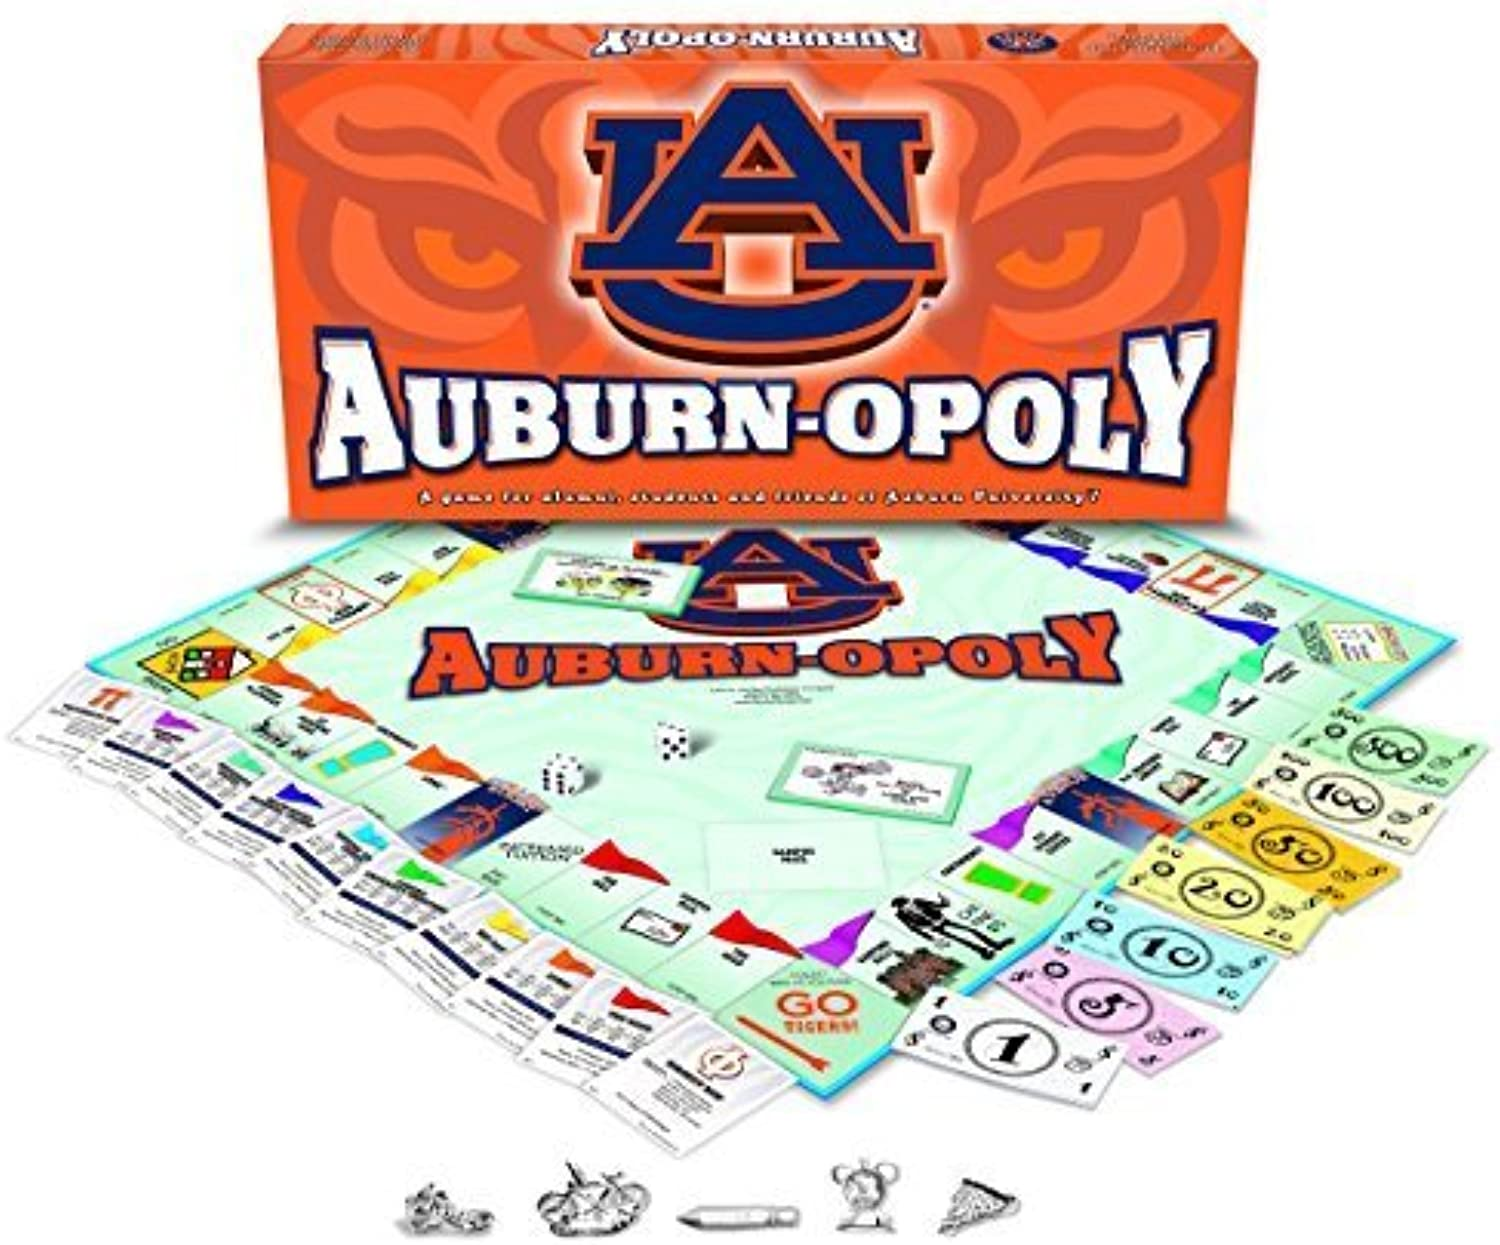 Auburn University  Auburnopoly by Late for the Sky